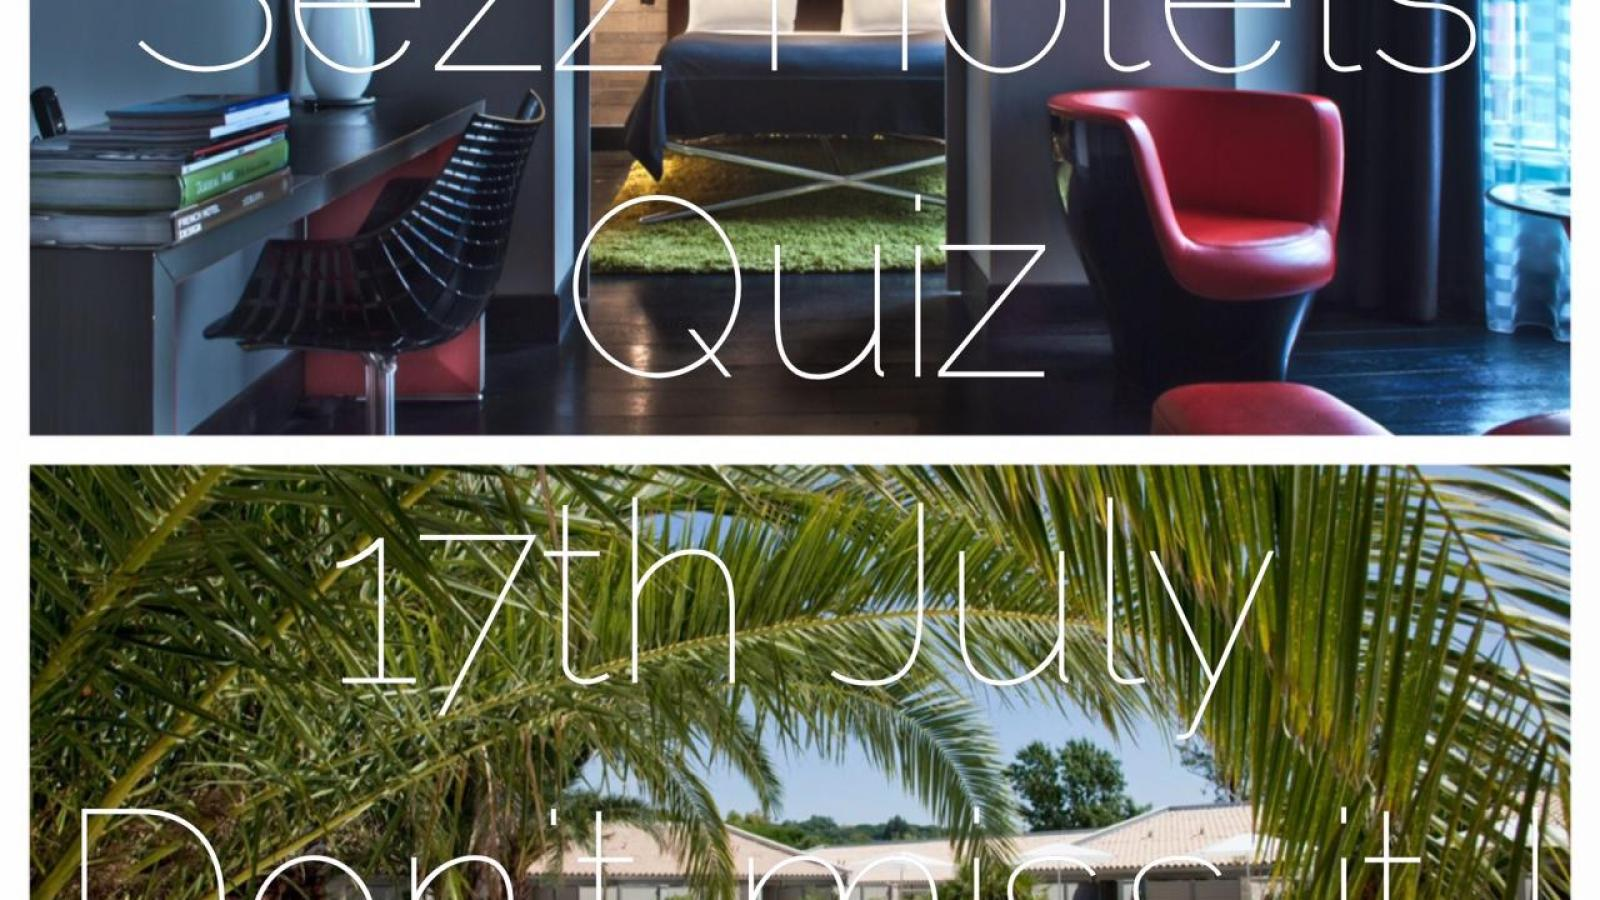 Sezz hotels quiz on our Facebook page !